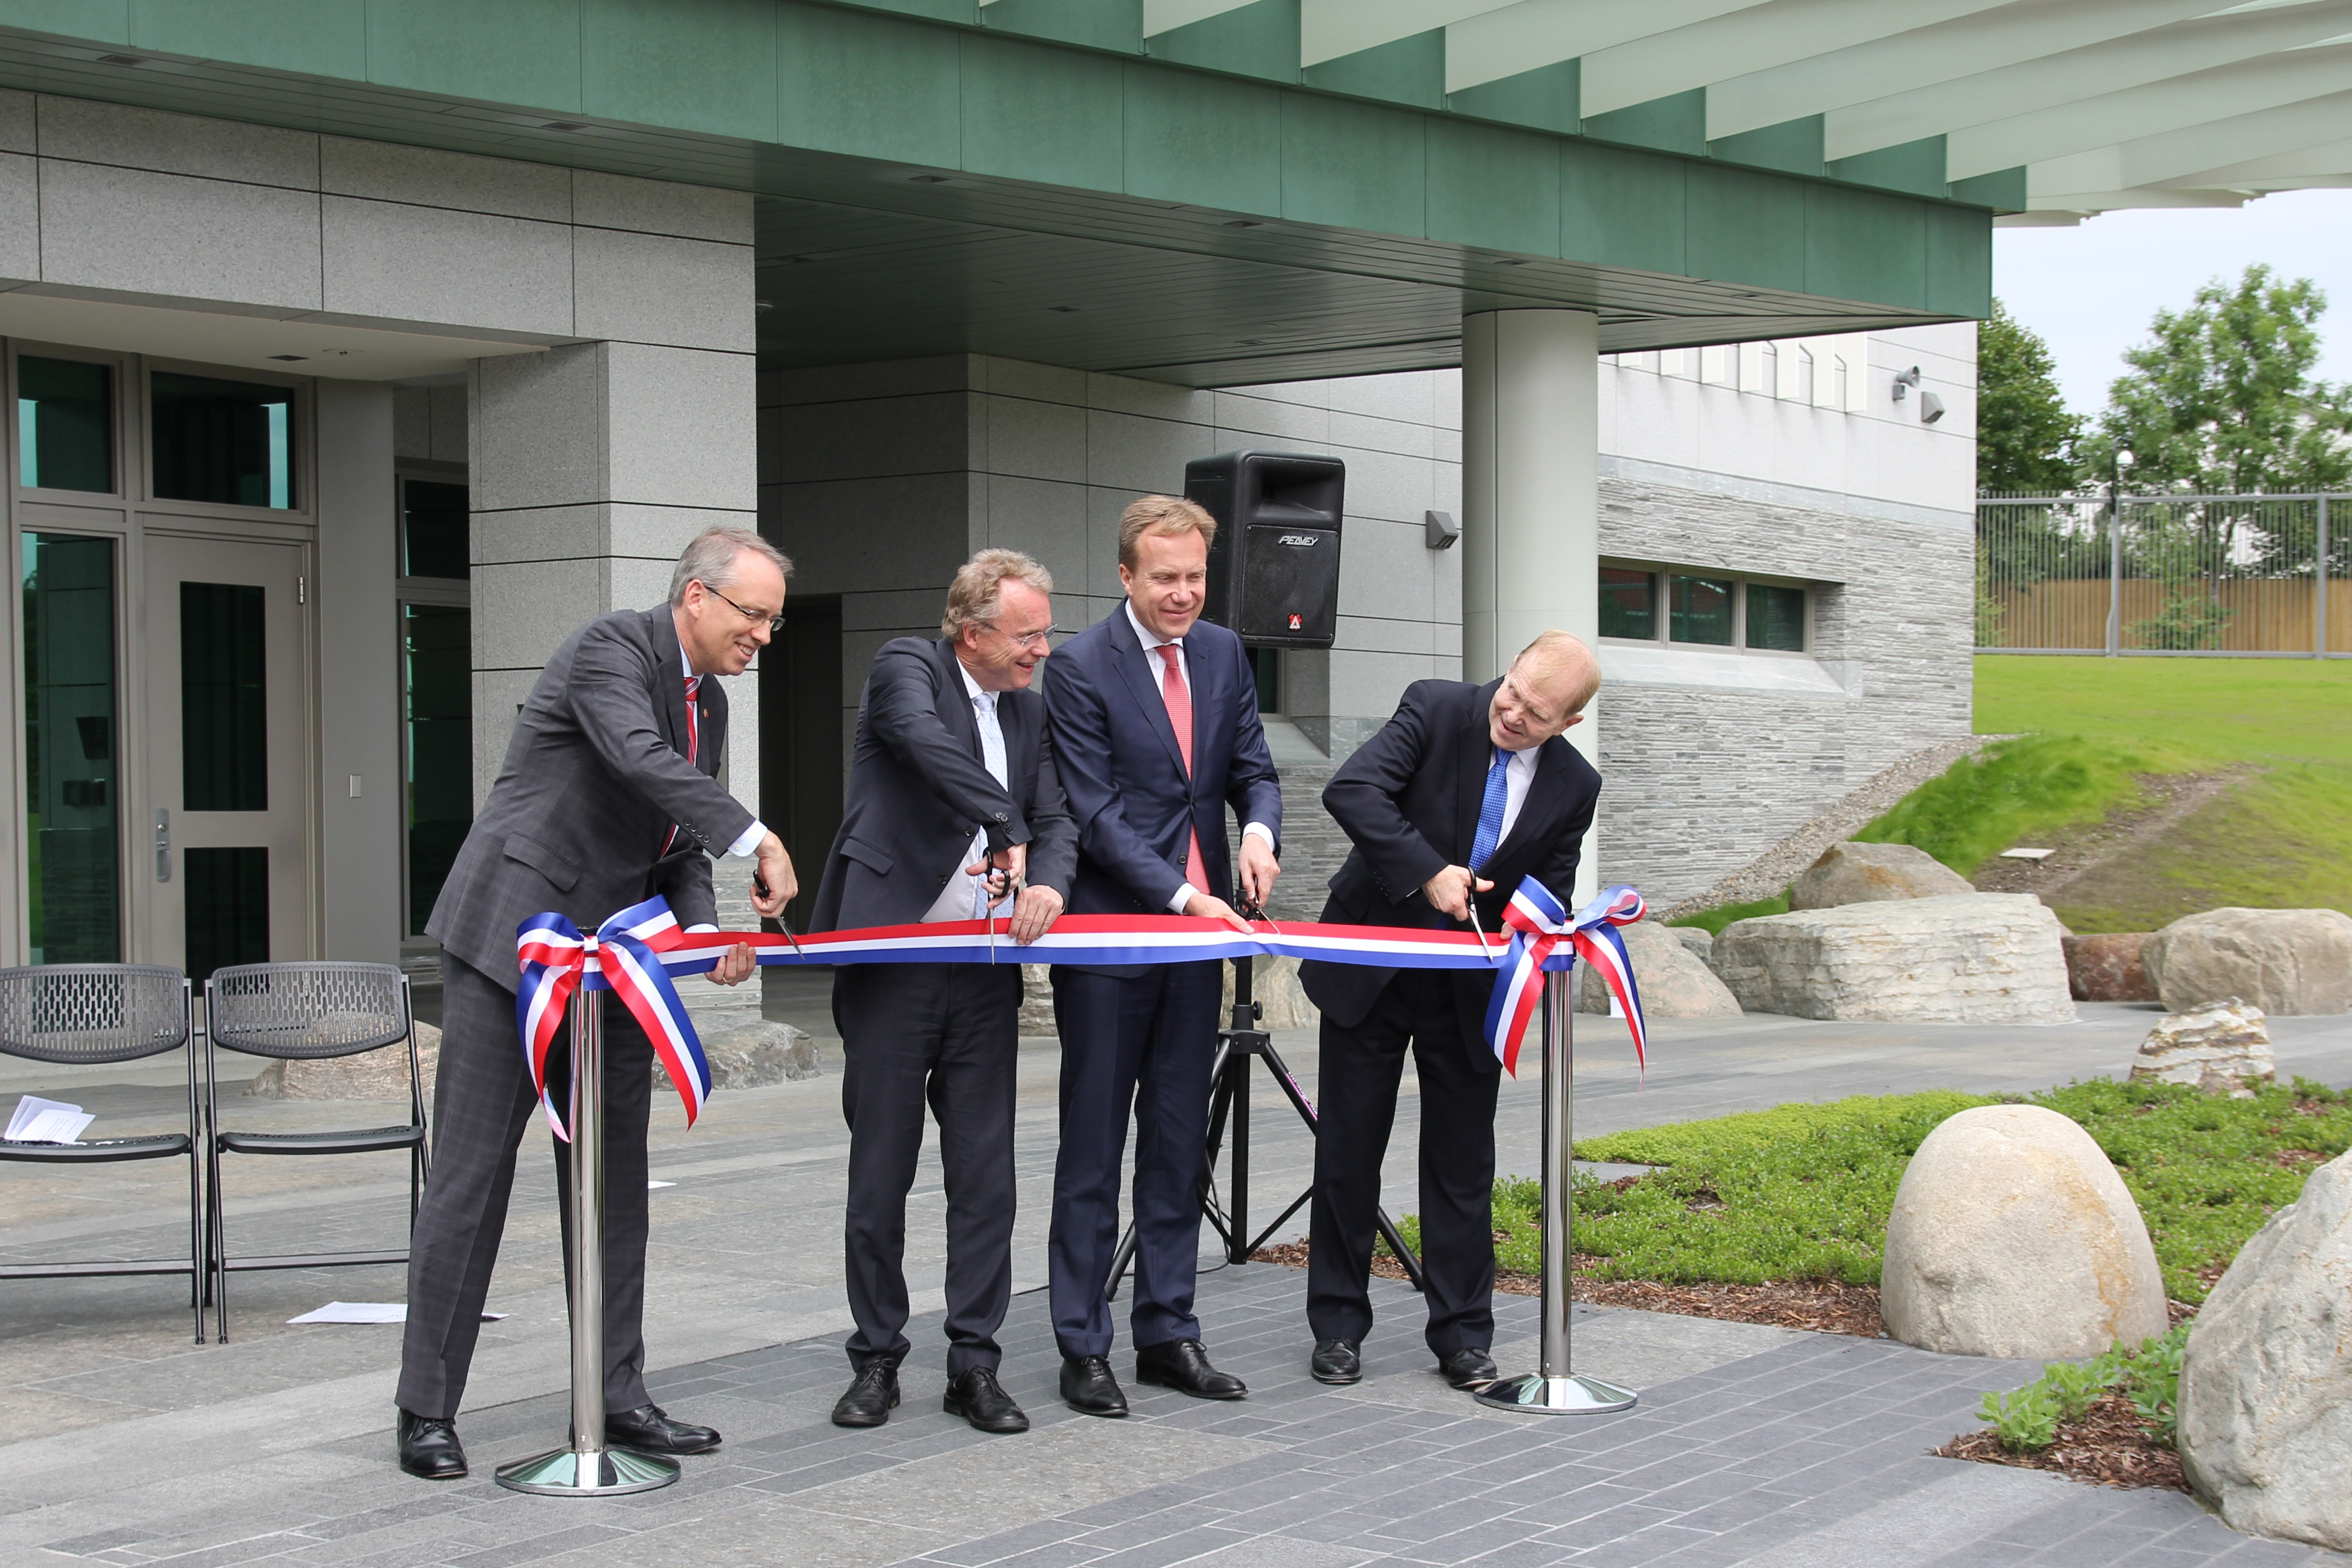 Charge d'Affaires Jim DeHart, Governing Mayor of Oslo Raymond Johansen, Foreign Minister Børge Brende and OBO's Director William Moser are ready to cut the ribbon.